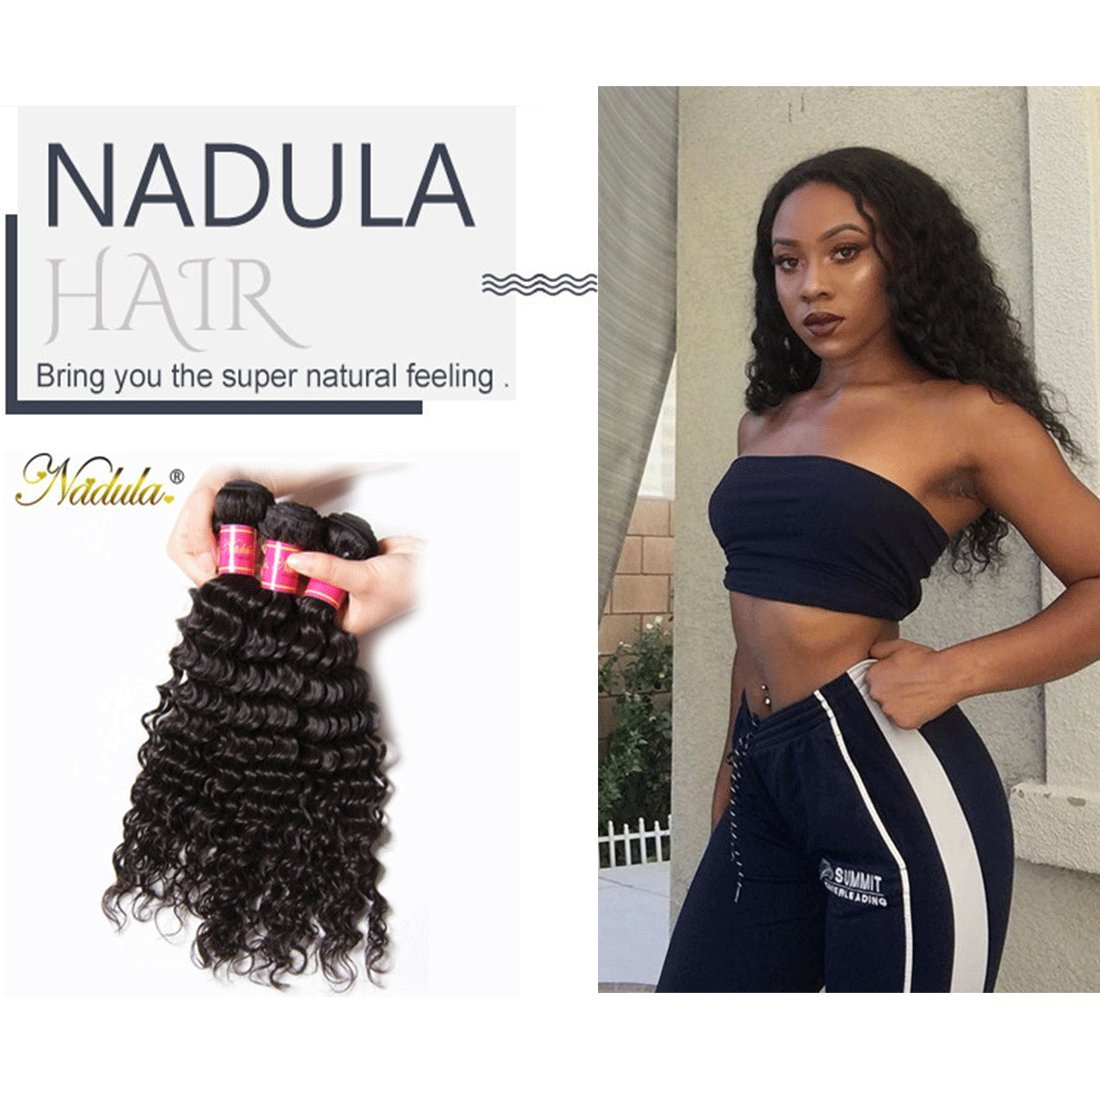 Nadula 6a Remy Virgin Brazilian Deep Wave Human Hair Extensions Pack of 3 Unprocessed Deep Wave Weave Natural Color Mixed Length 16inch 18inch 20inch by Nadula (Image #6)